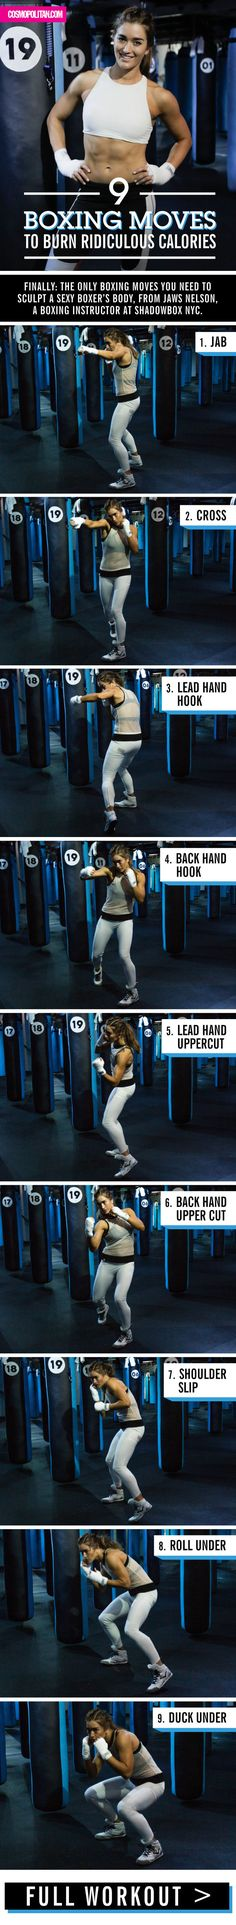 Boxing Moves for Beginners — 9 Boxing Moves to Burn Ridiculous Calories